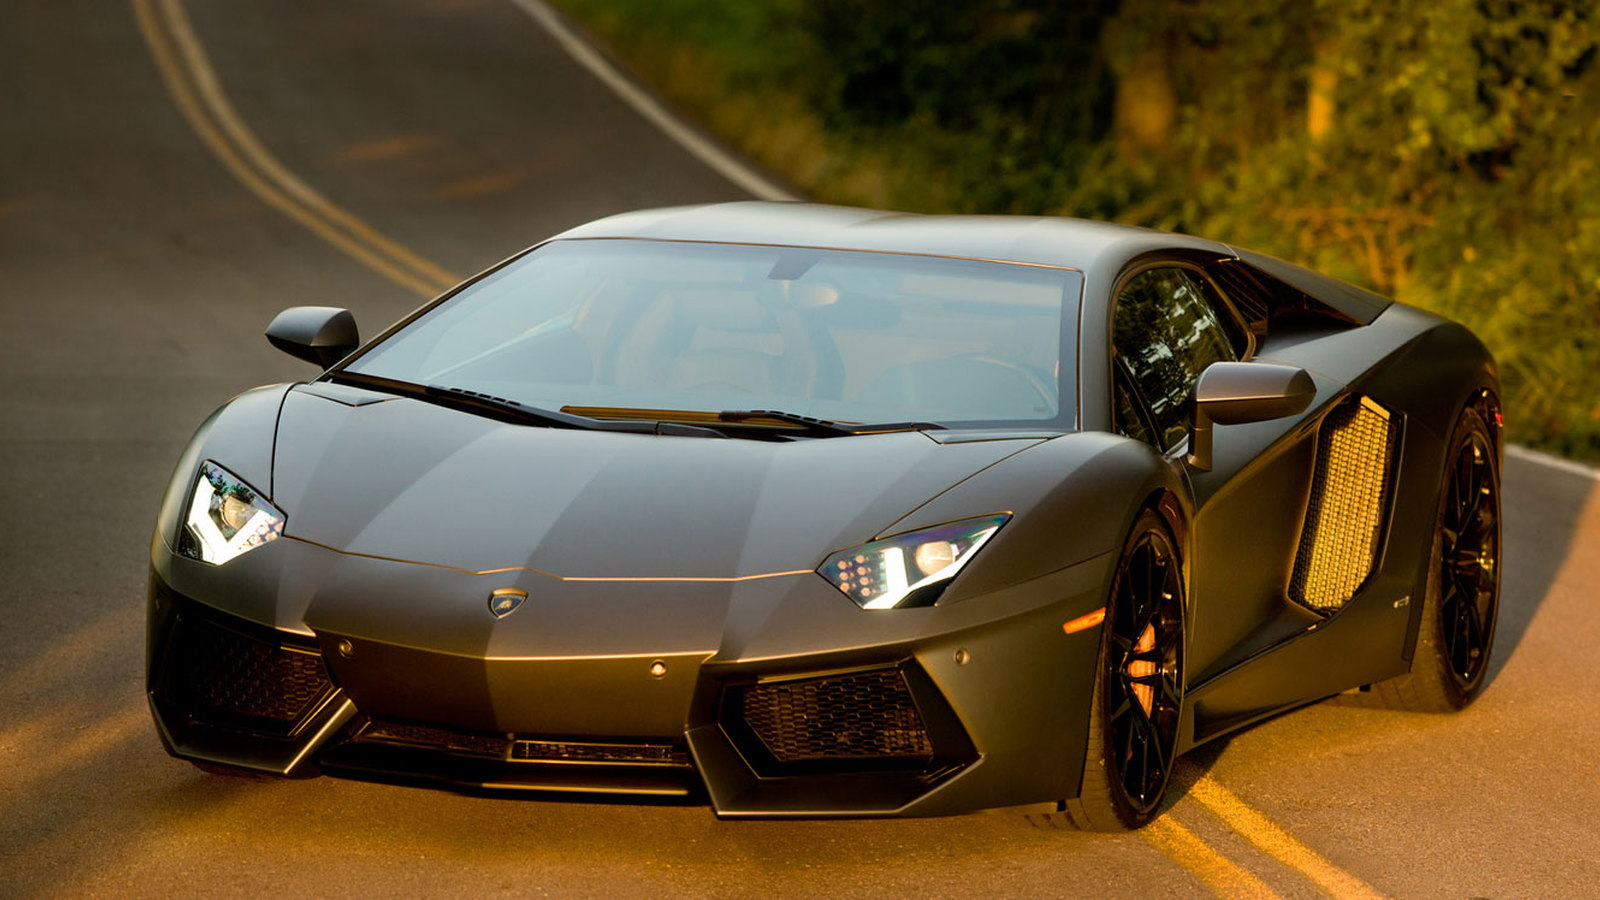 Lamborghini Aventador LP 700-4 on the set of Transformers 4 movie